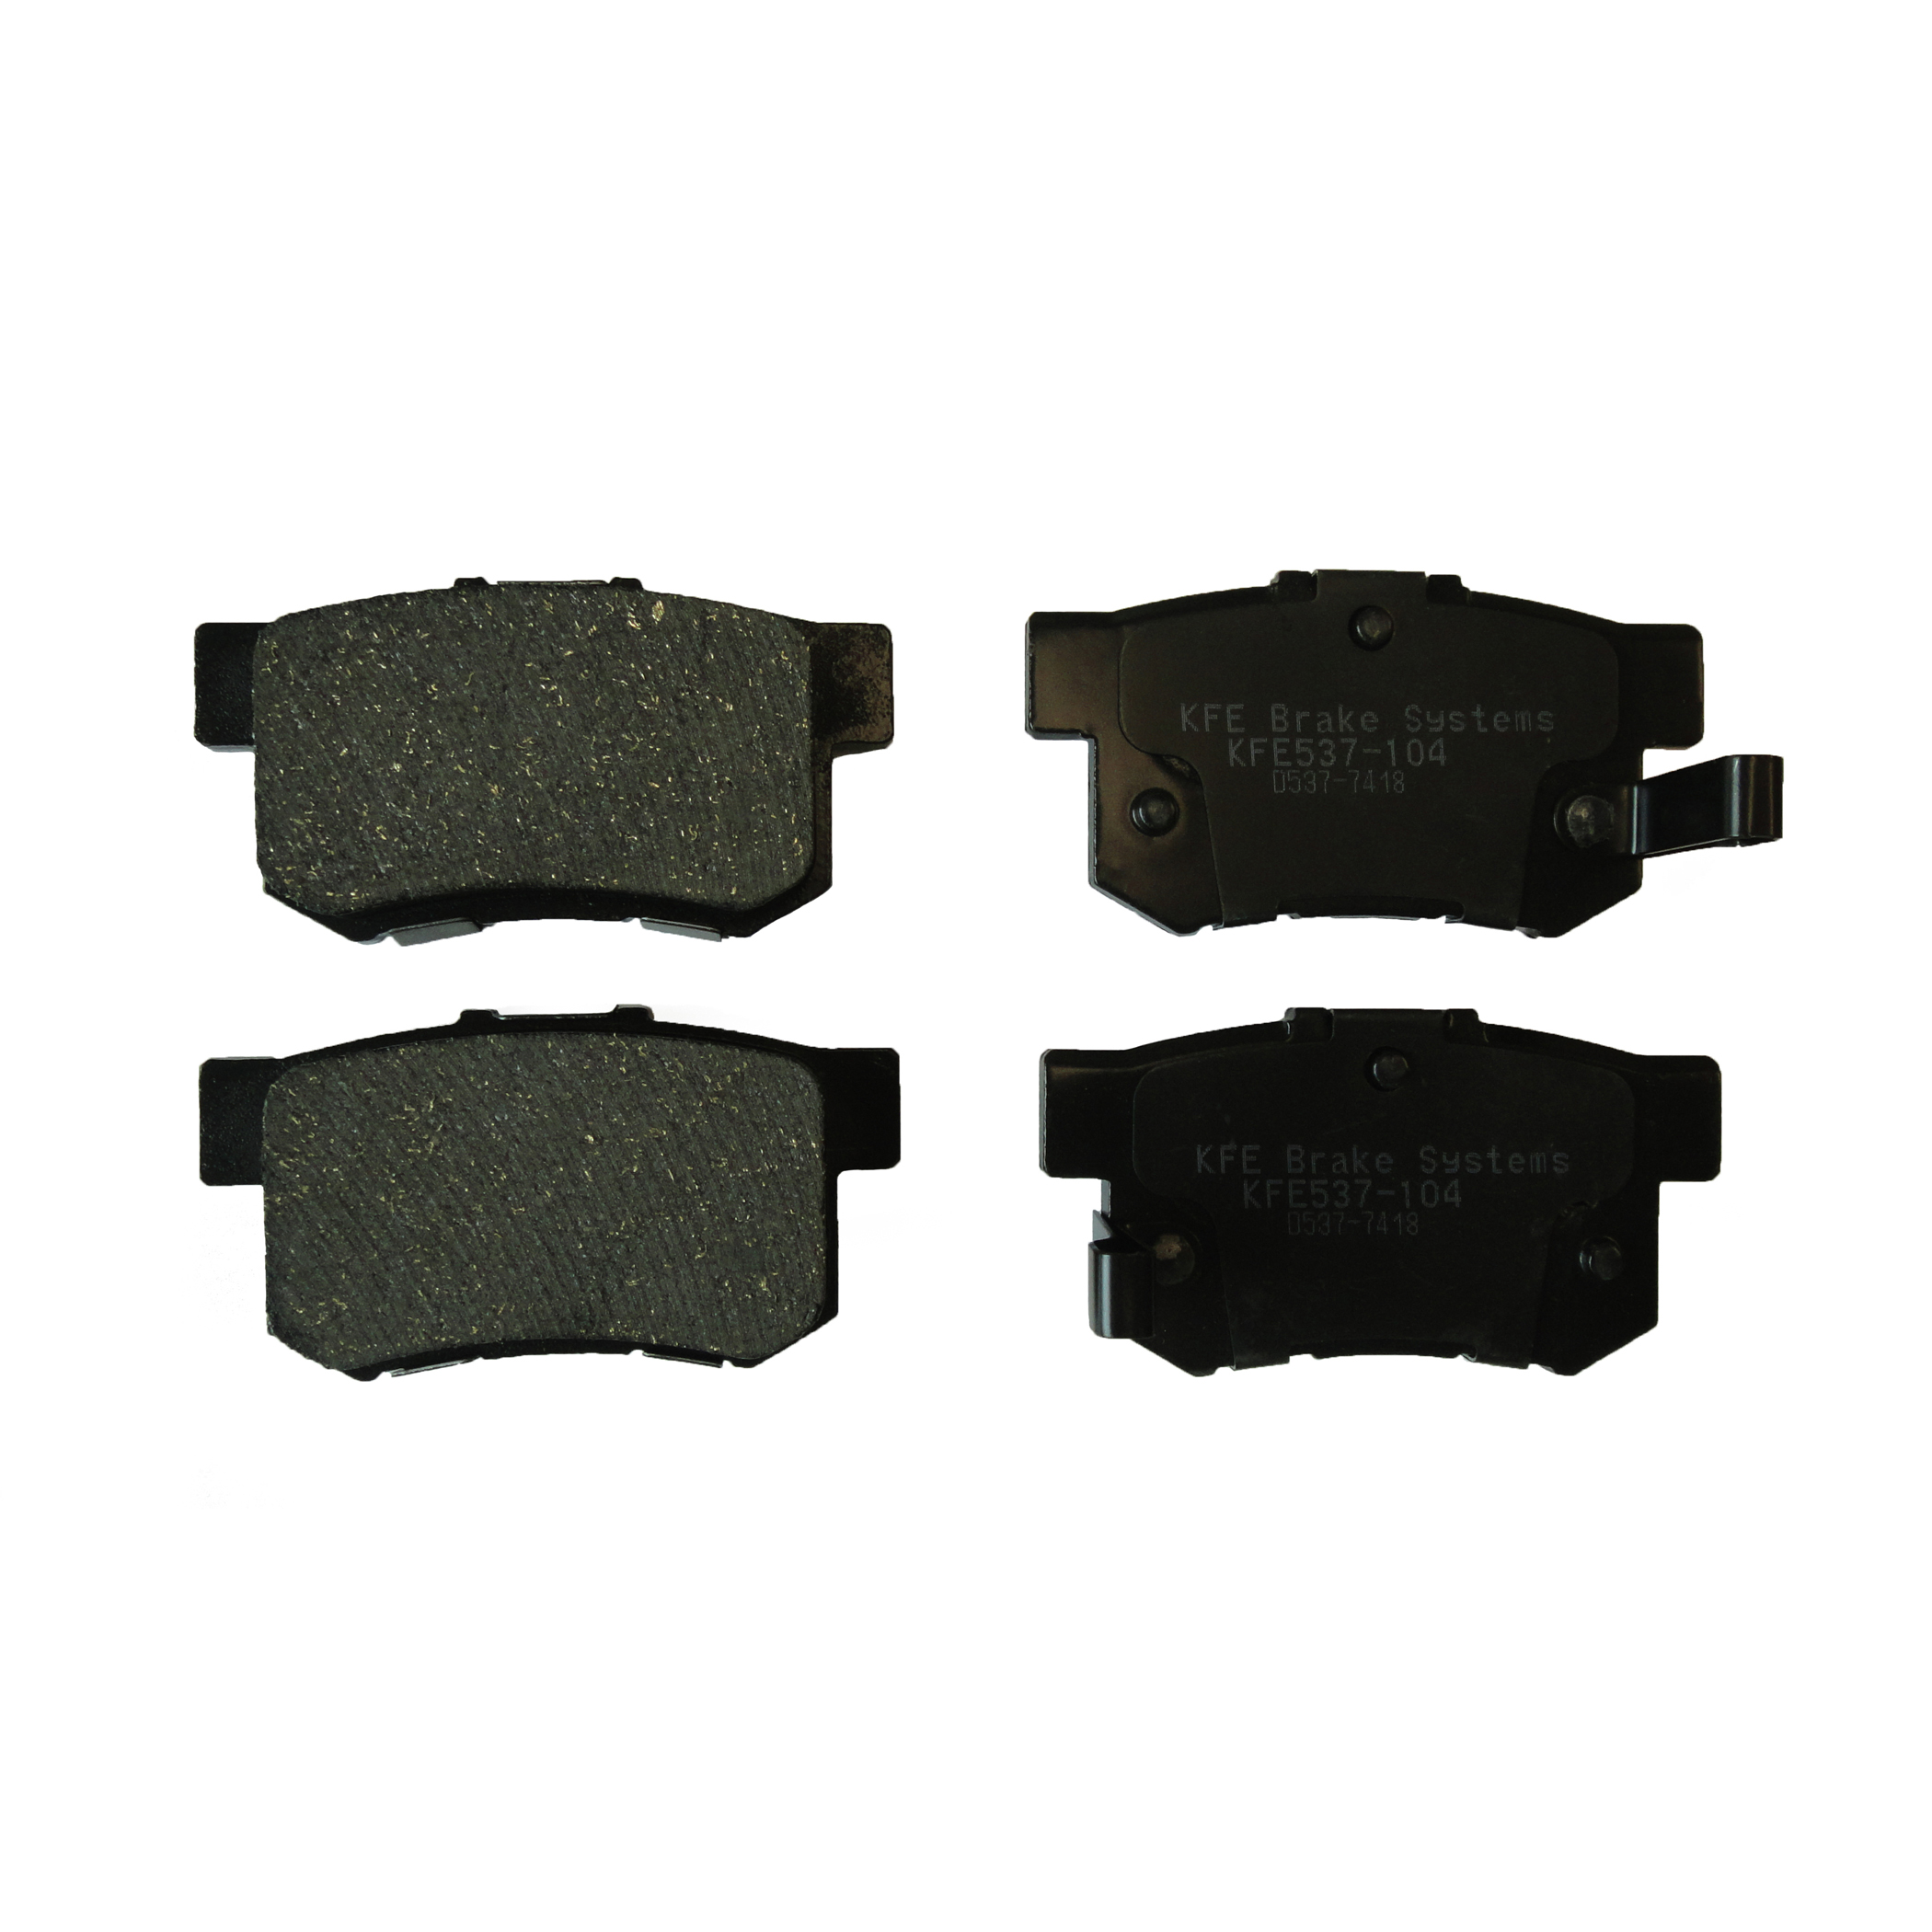 KFE537-104 Ultra Quiet Advanced Brake Pad